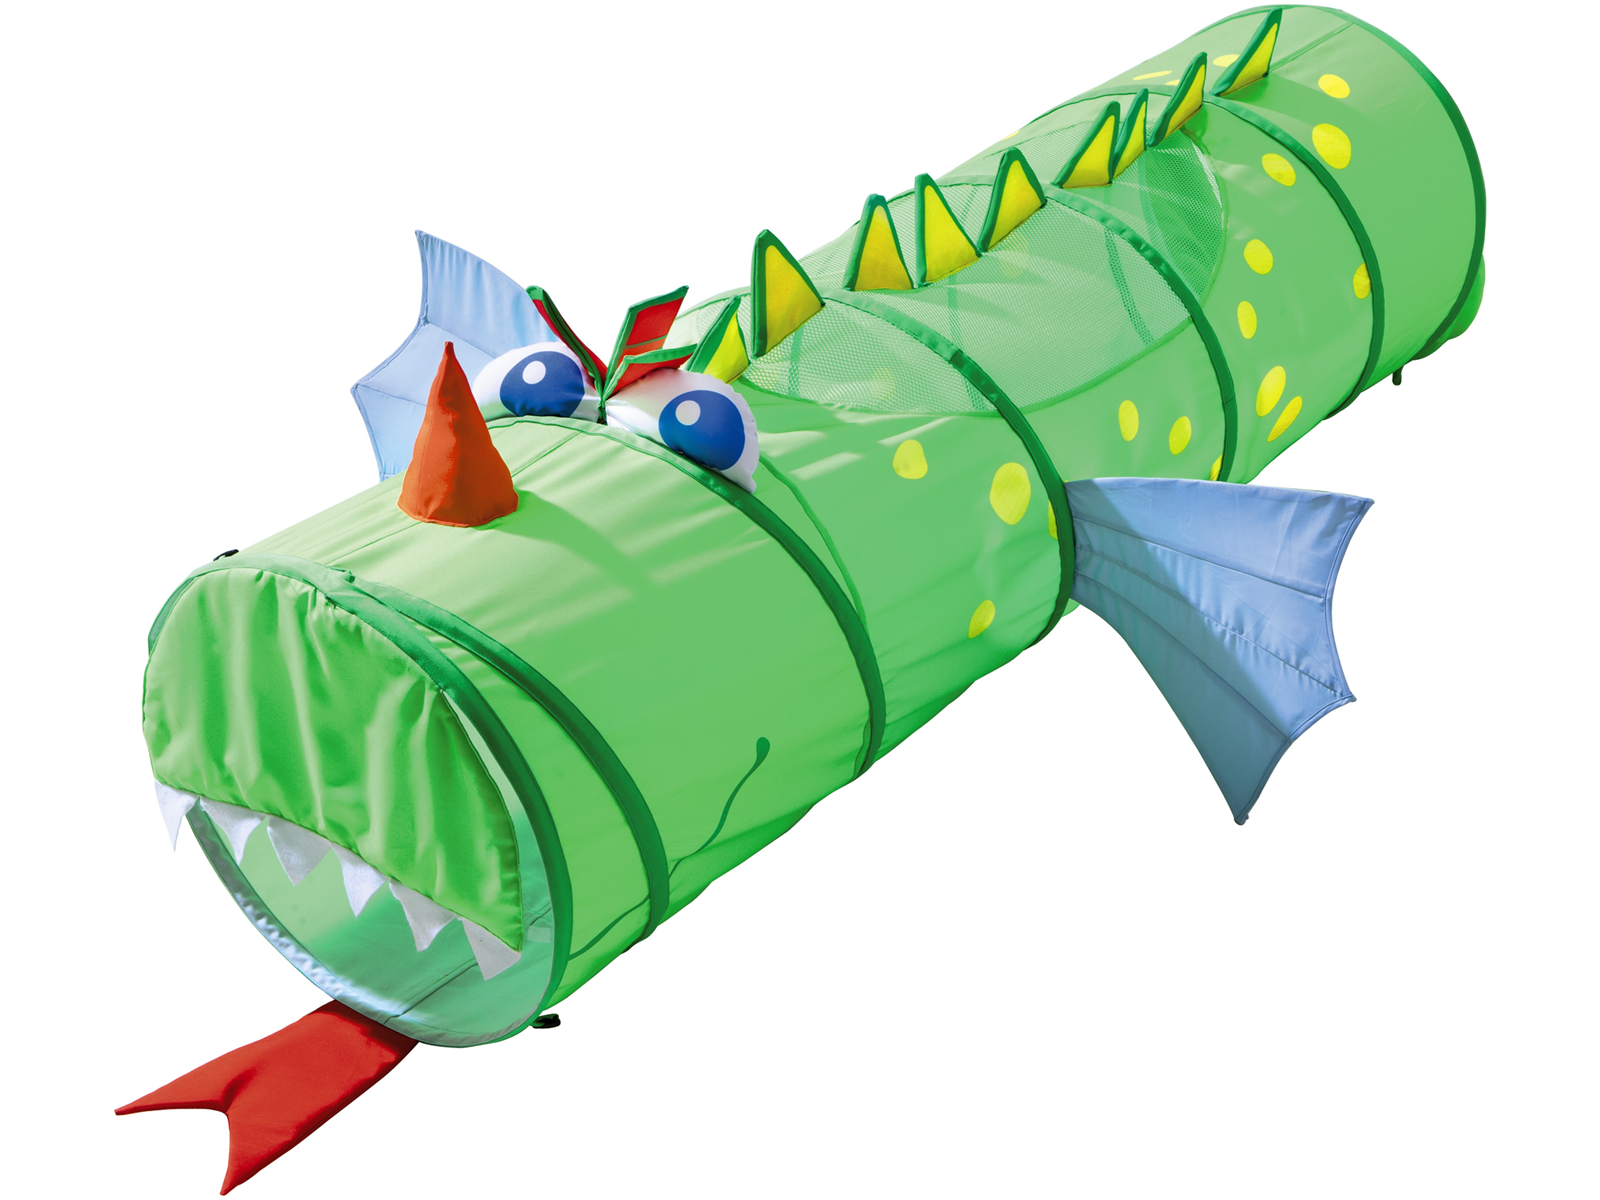 Haba Croco Kuno Crawling Tunnel - Buy Online - Playhouse of Dreams  - 3